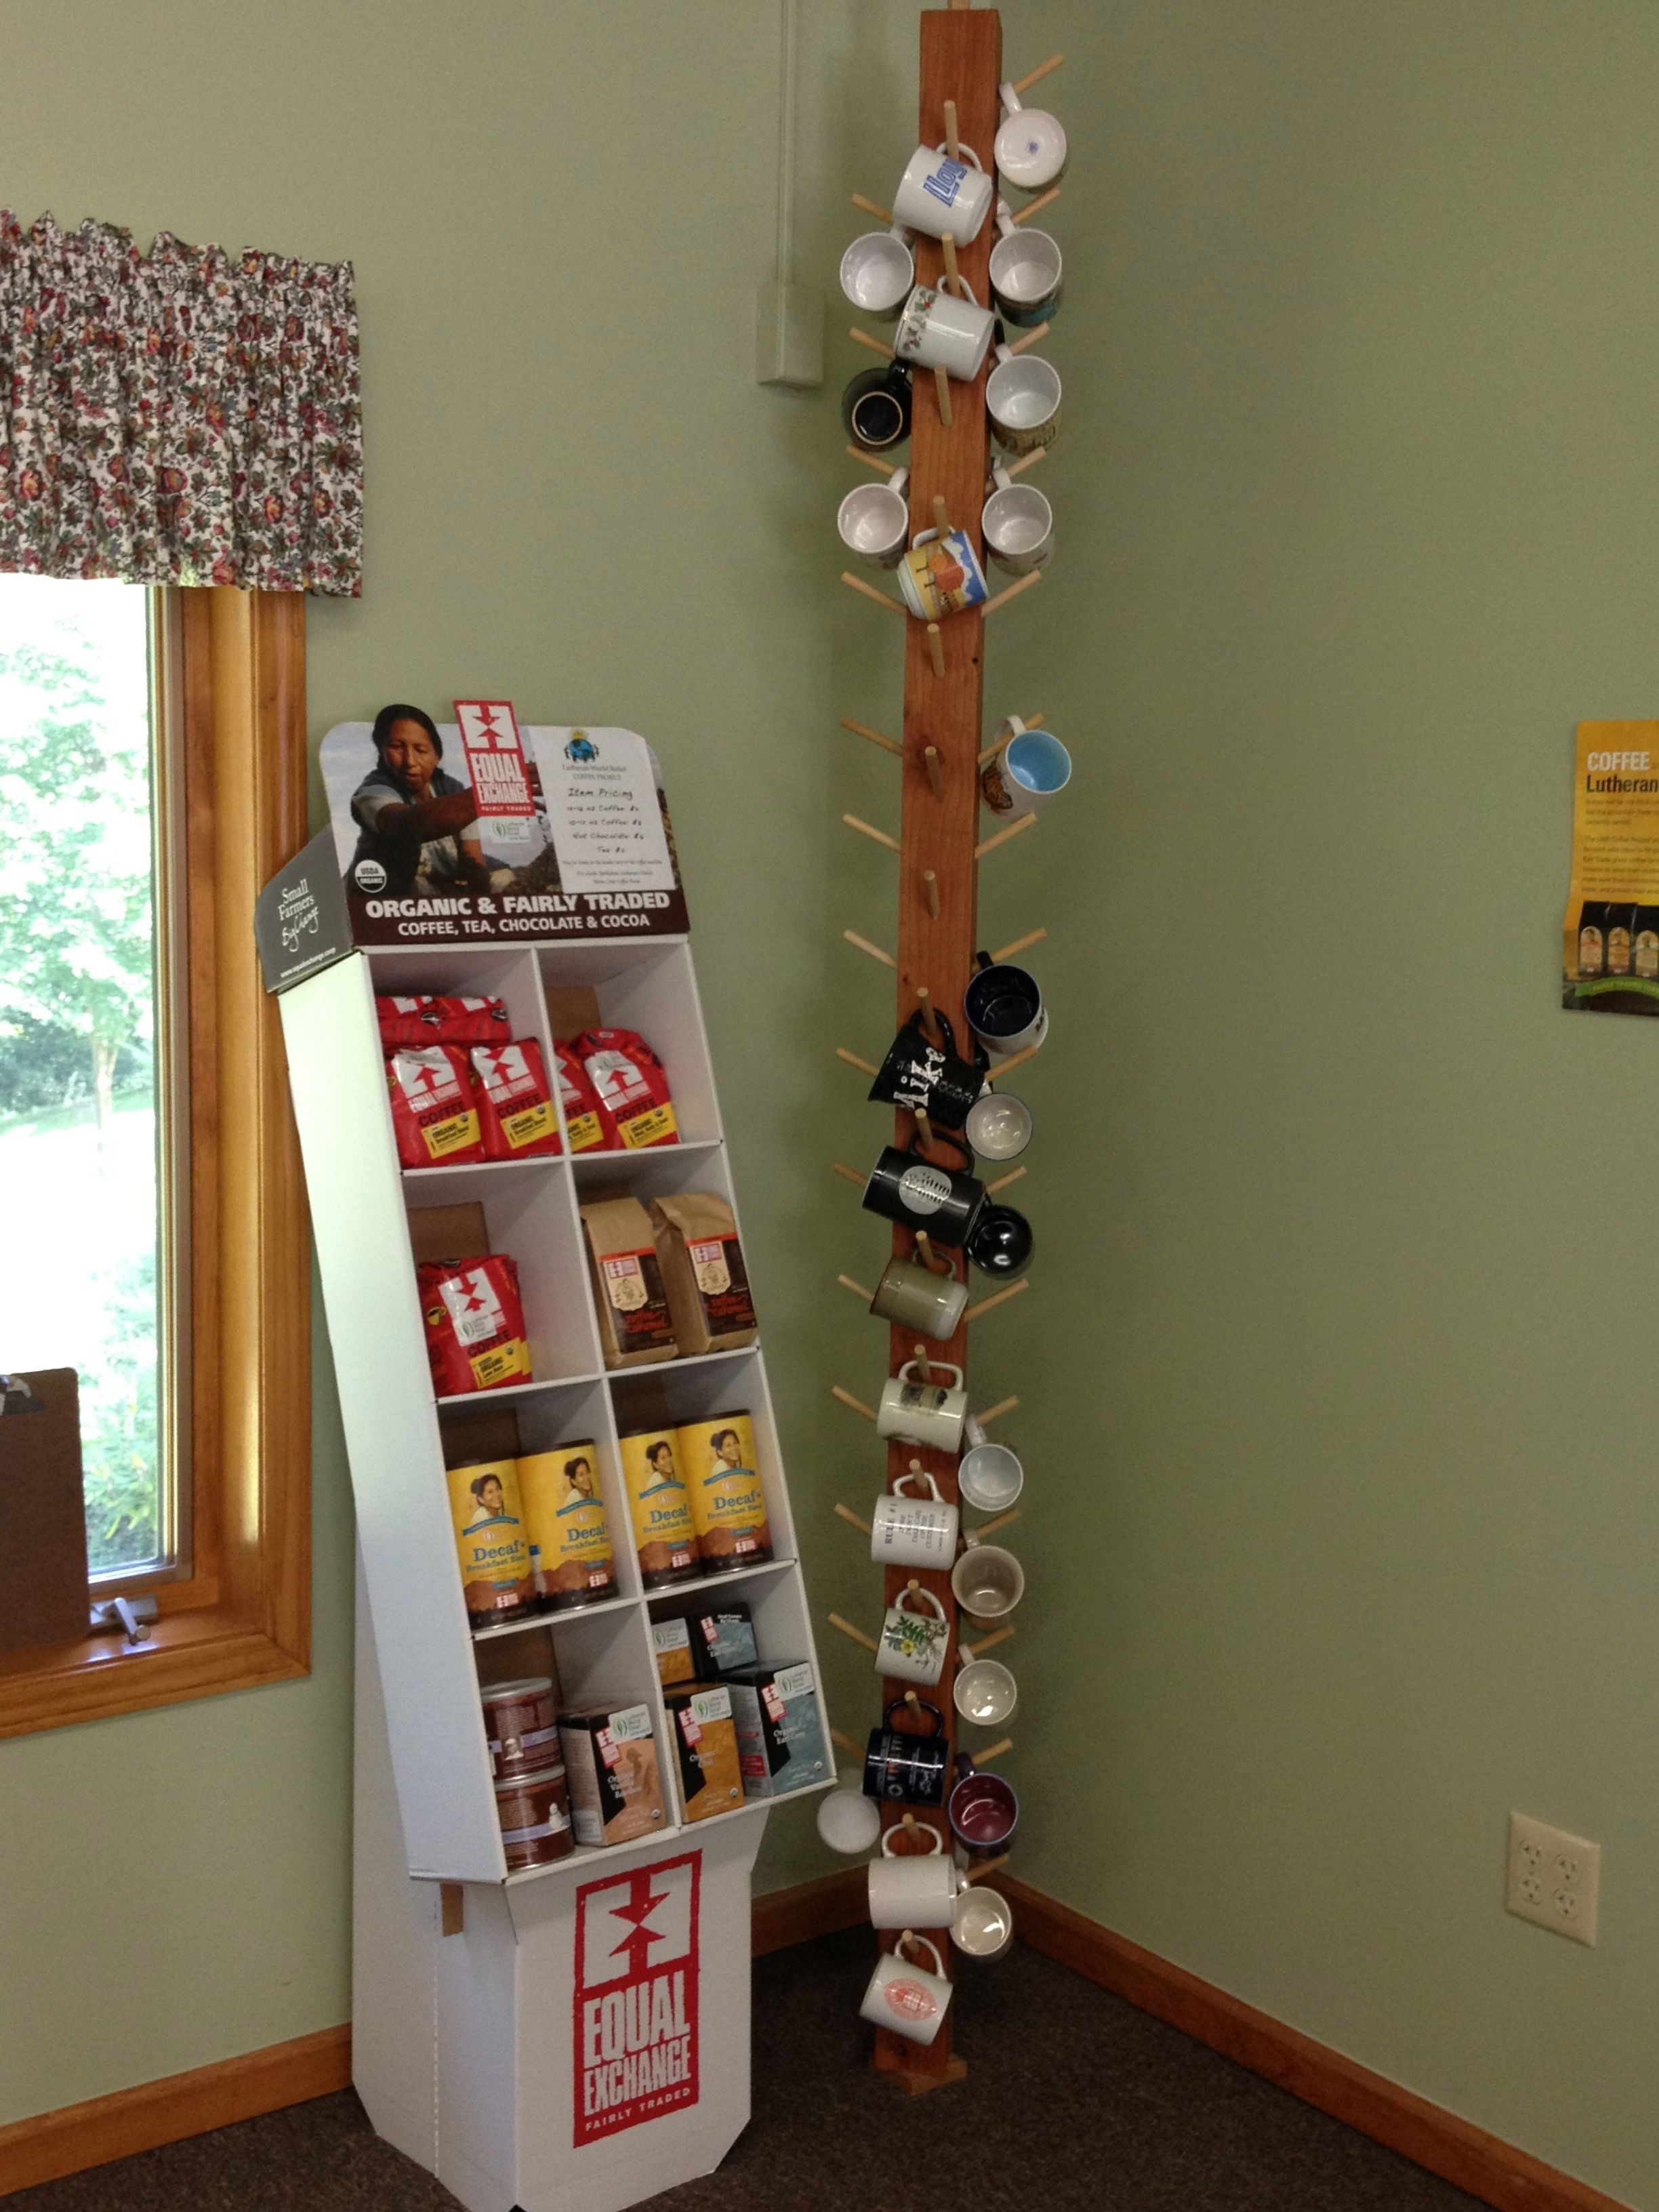 Floor To Ceiling Mug Rack And Equal Exchange Coffee Display Pic By Me At Bethlehem Lc Sturbridge Ma Mug Storage Coffee Mug Storage Mug Display